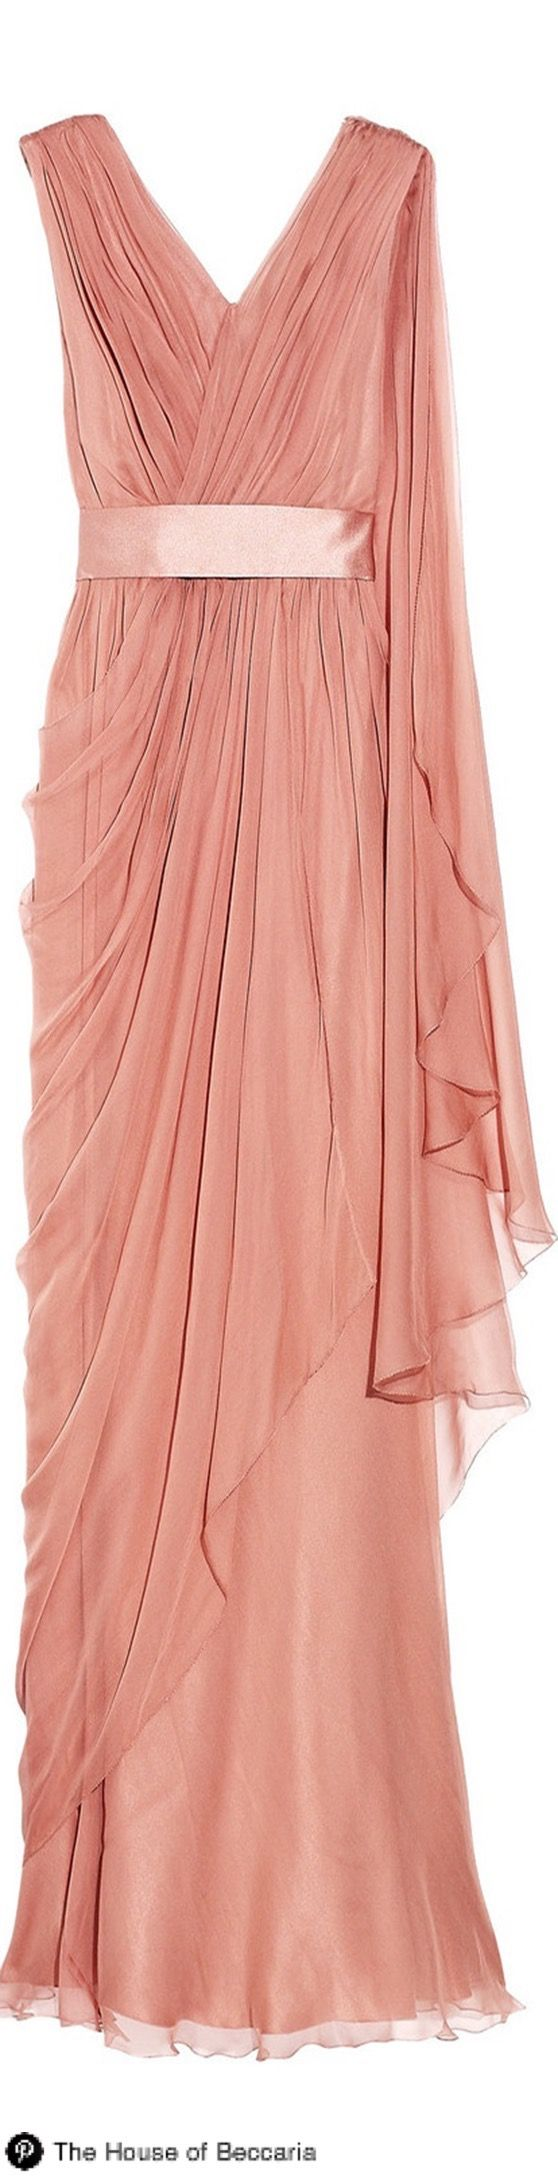 Alberta Ferretti Grecian Inspired Silk-chiffon gown | The House of ...